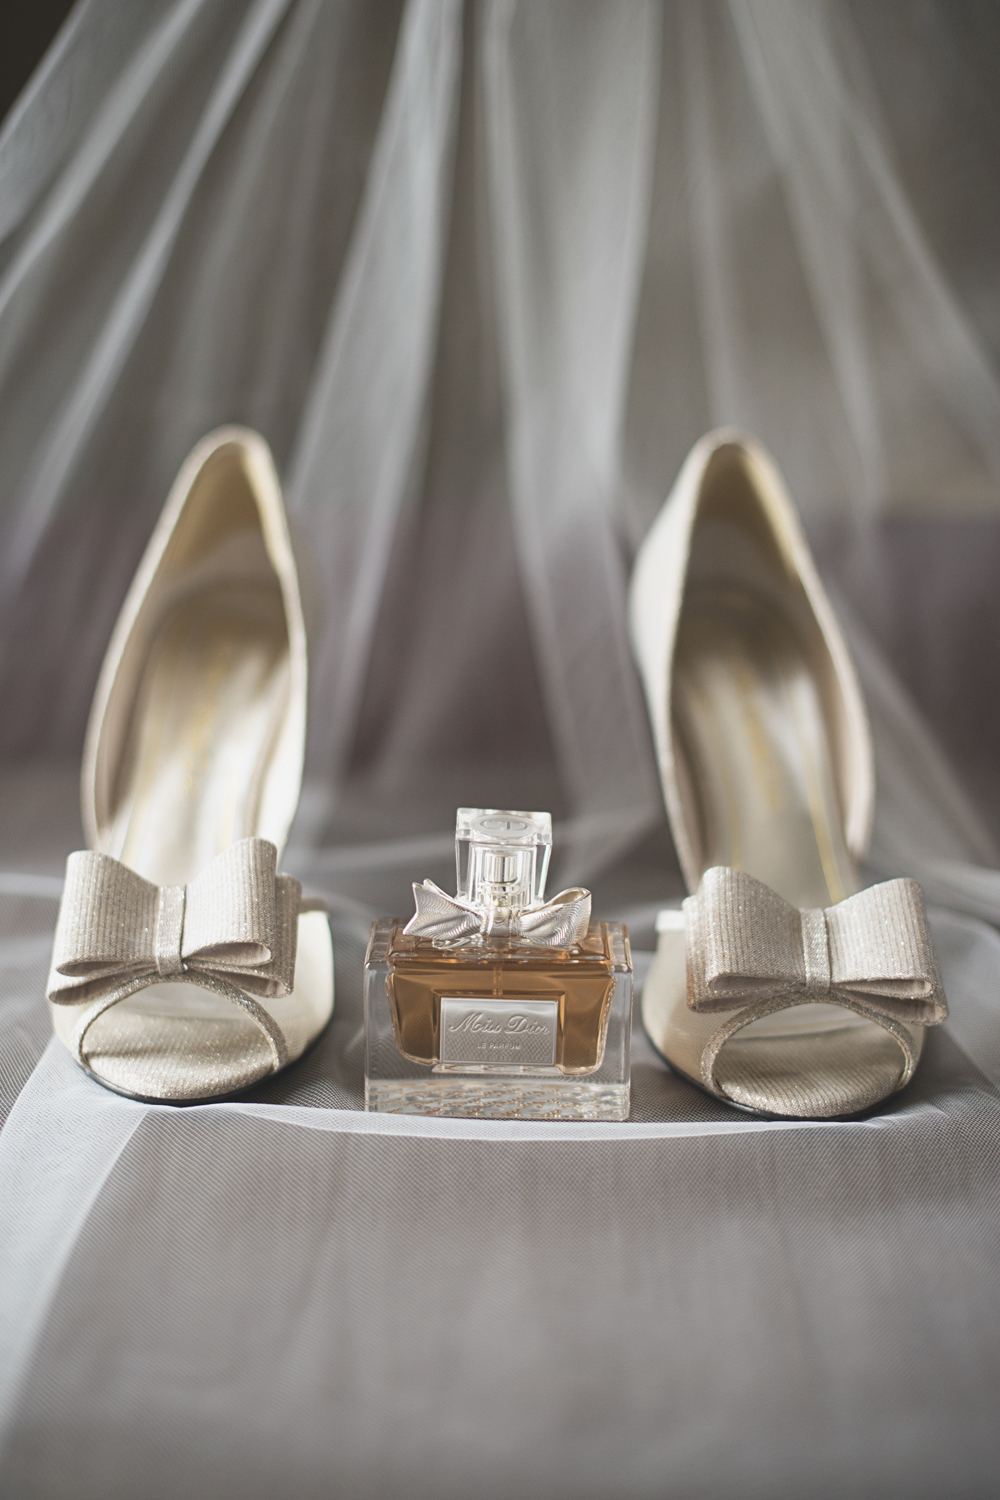 Trump National Golf Club Wedding | Washington, DC Wedding | Sparkly gold shoes with bow and Miss Dior perfume